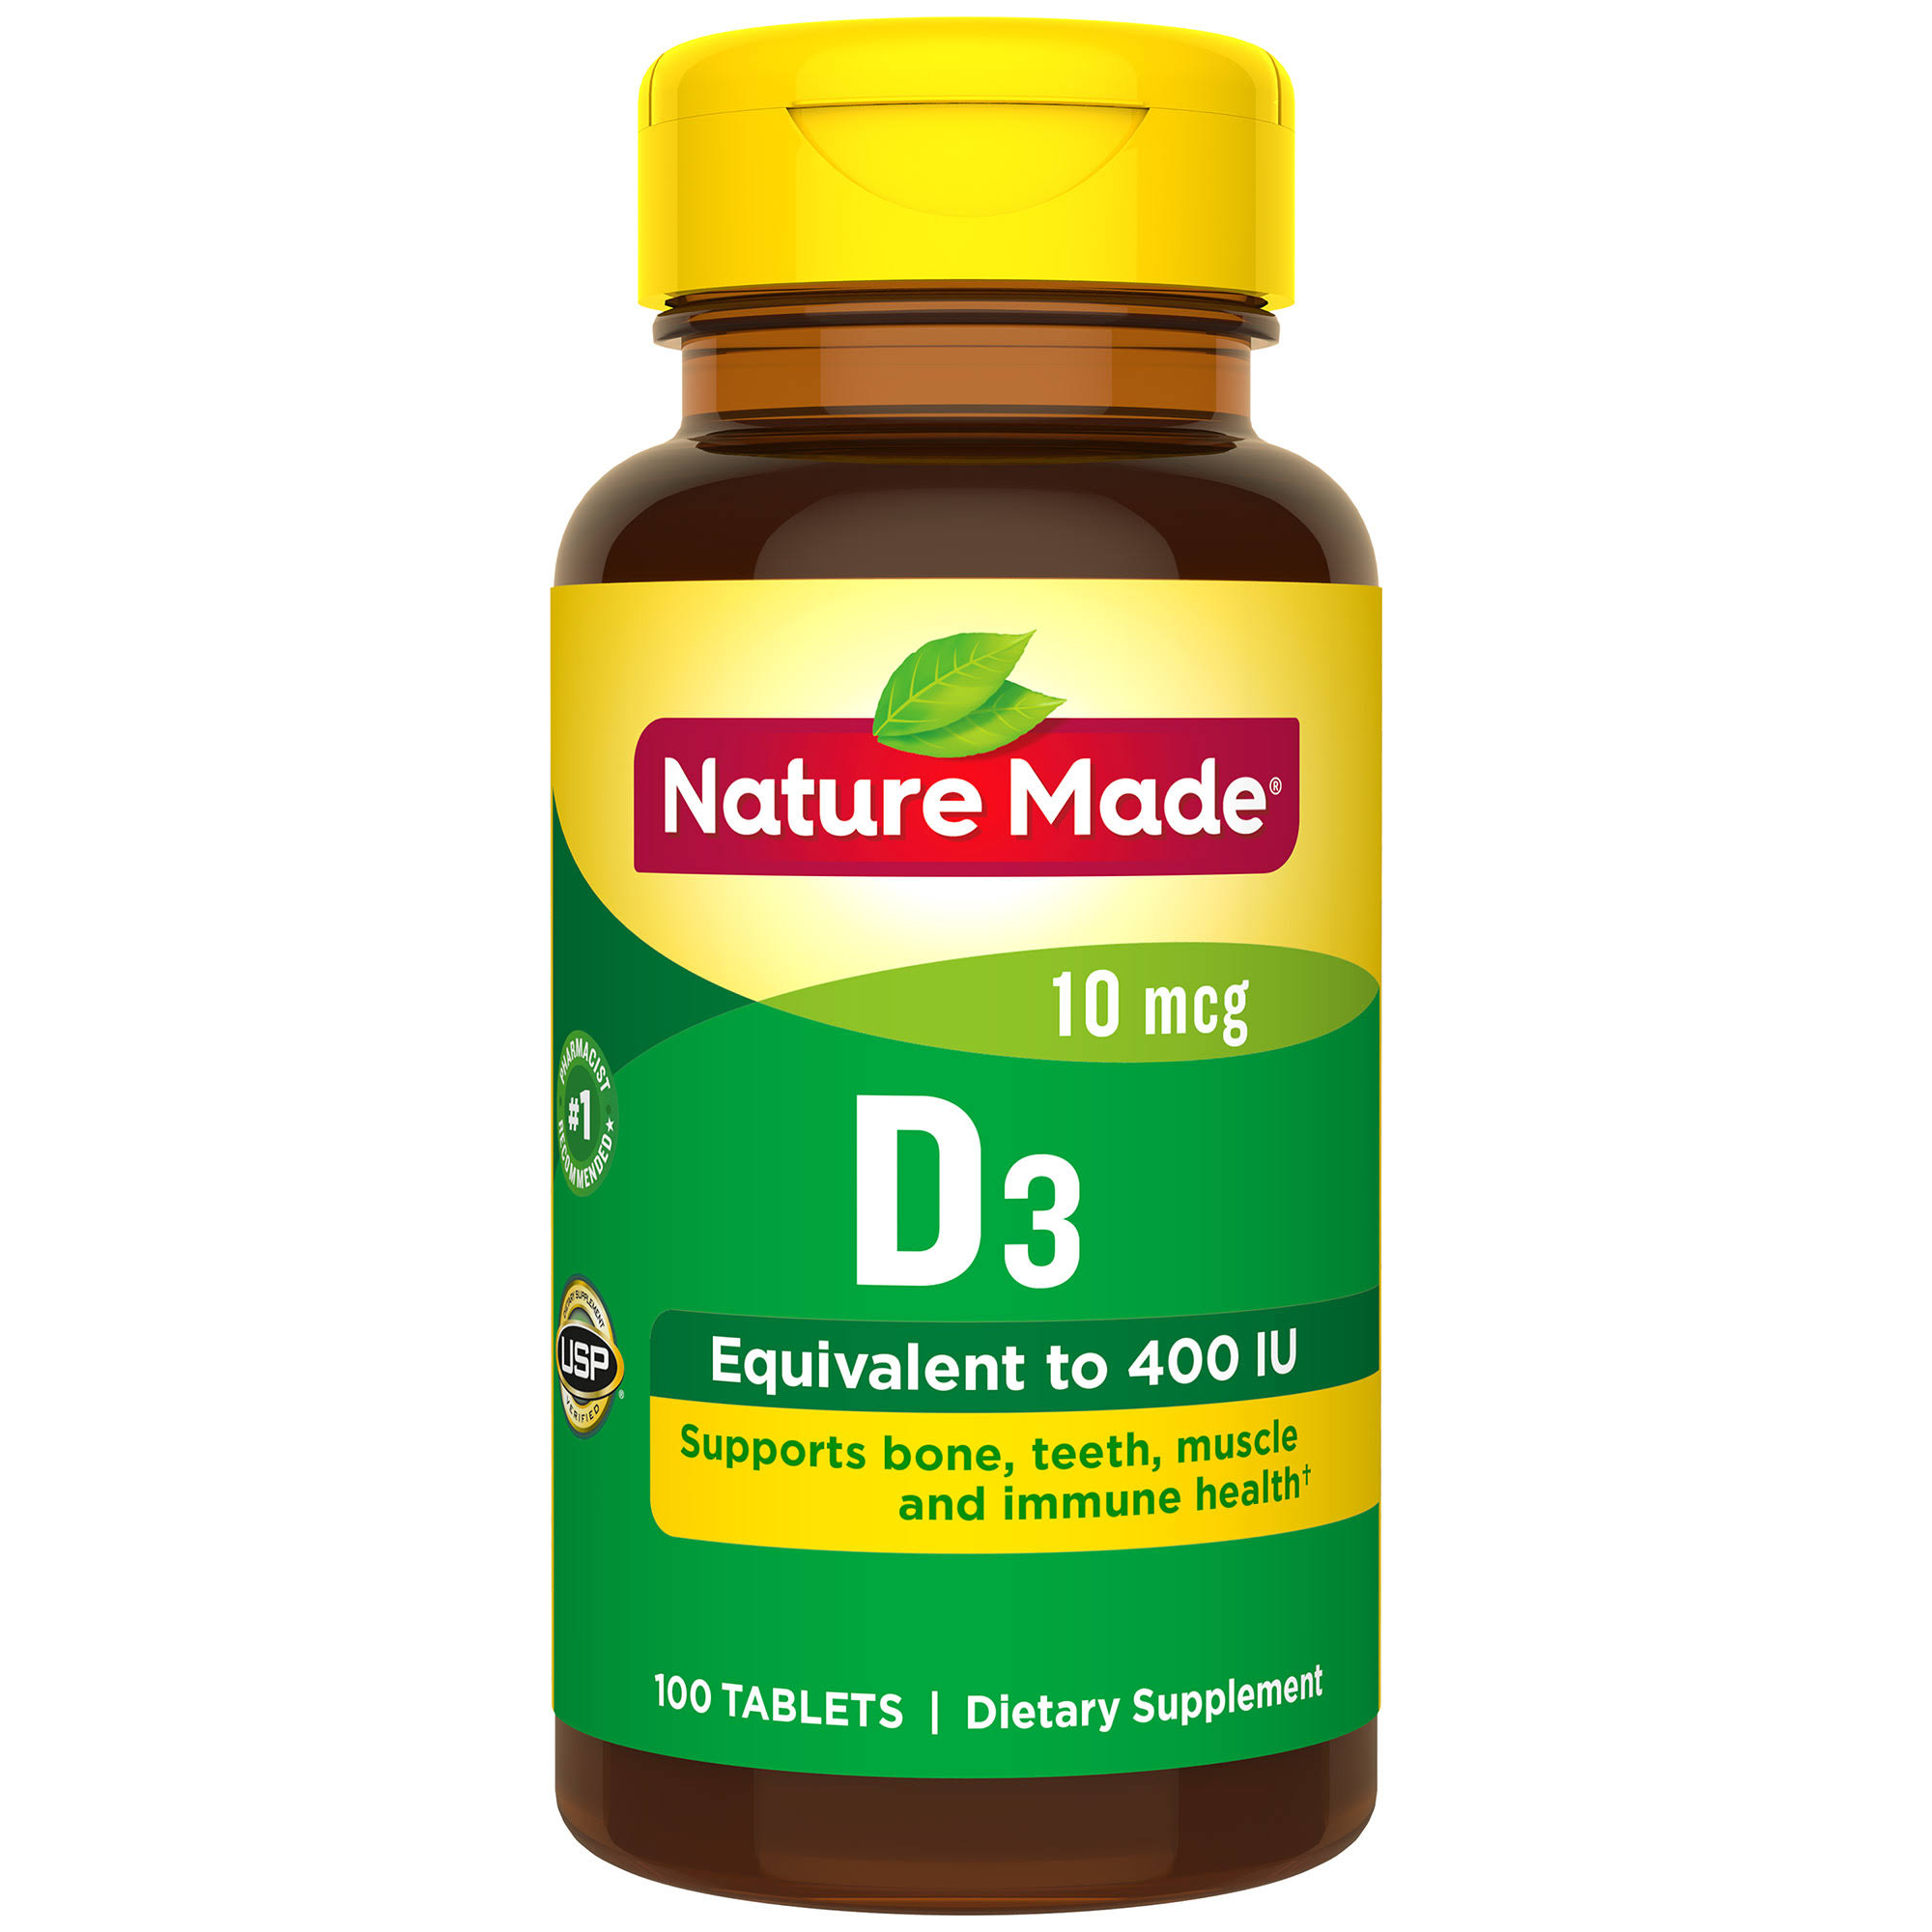 Nature Made Vitamin D3 400 IU Tablets - 100ct